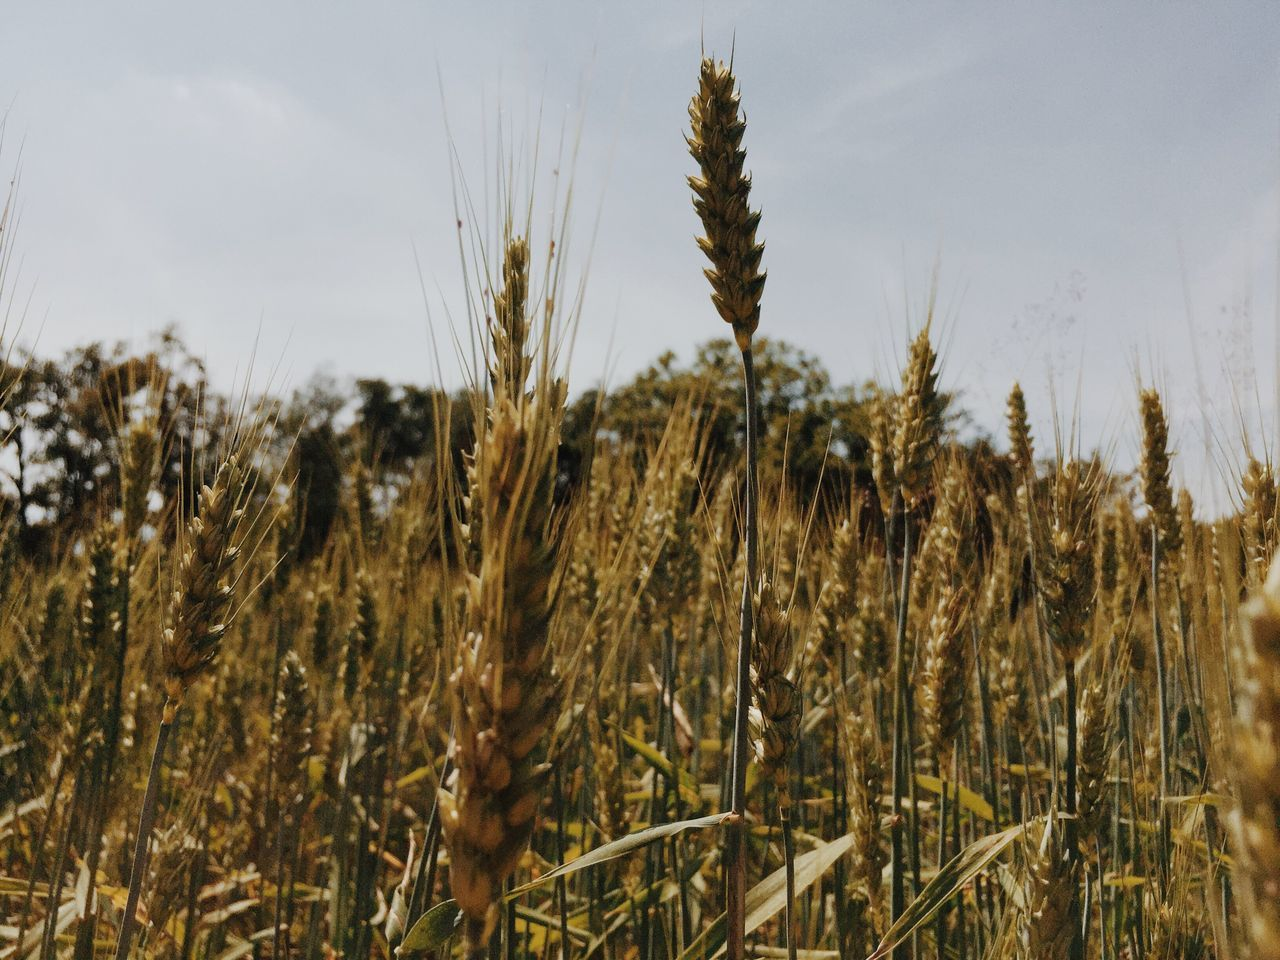 growth, nature, plant, field, agriculture, crop, cereal plant, wheat, farm, tranquility, tranquil scene, ear of wheat, no people, close-up, day, outdoors, beauty in nature, rural scene, landscape, sky